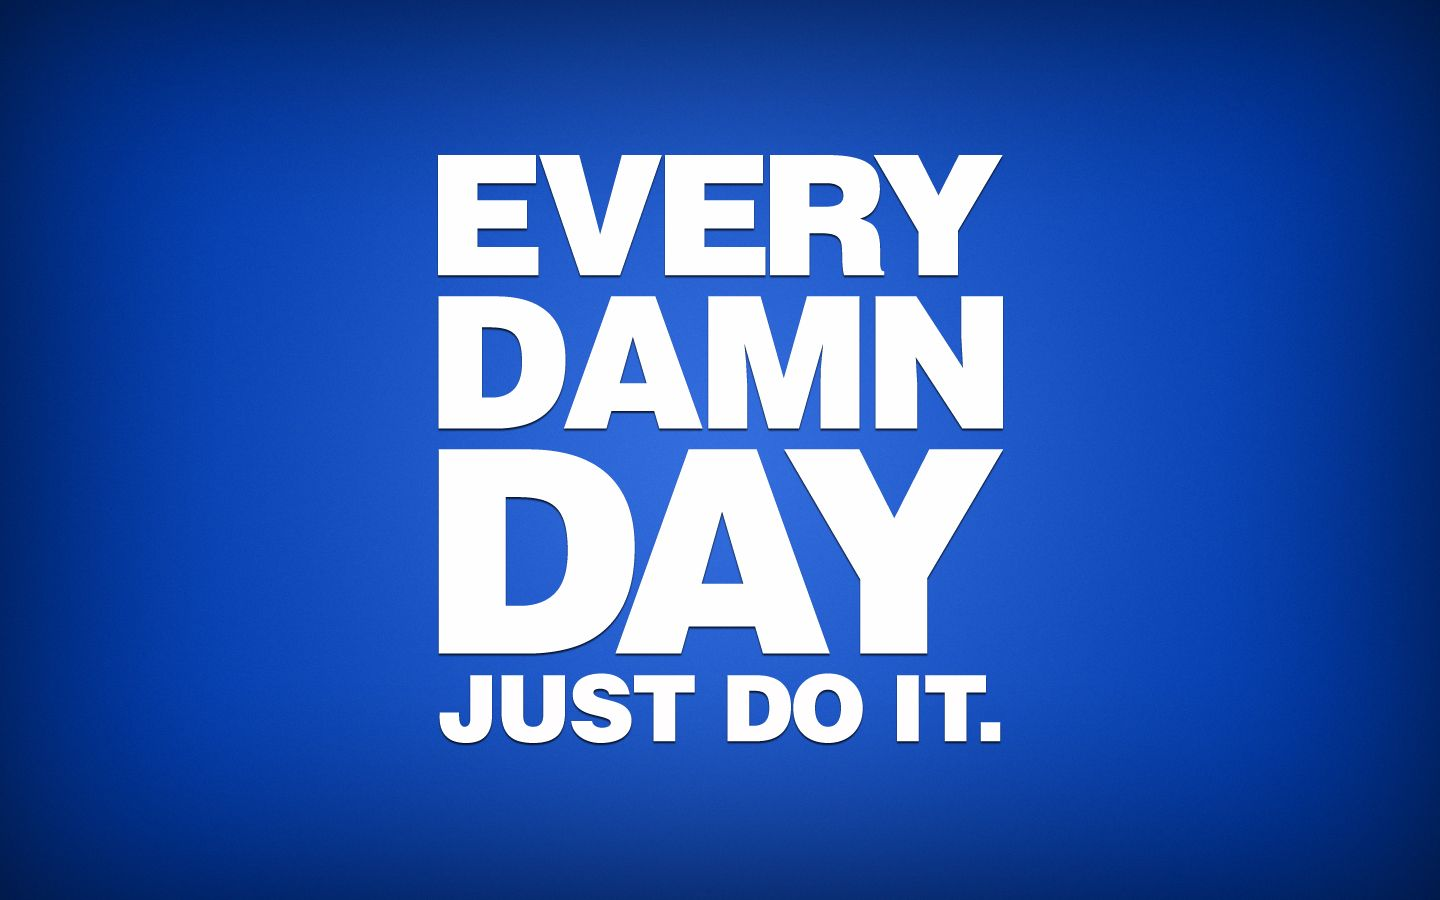 Just Do It Quotes Image For Nike Just Do It Wallpaper Wide R5E88  Motivational